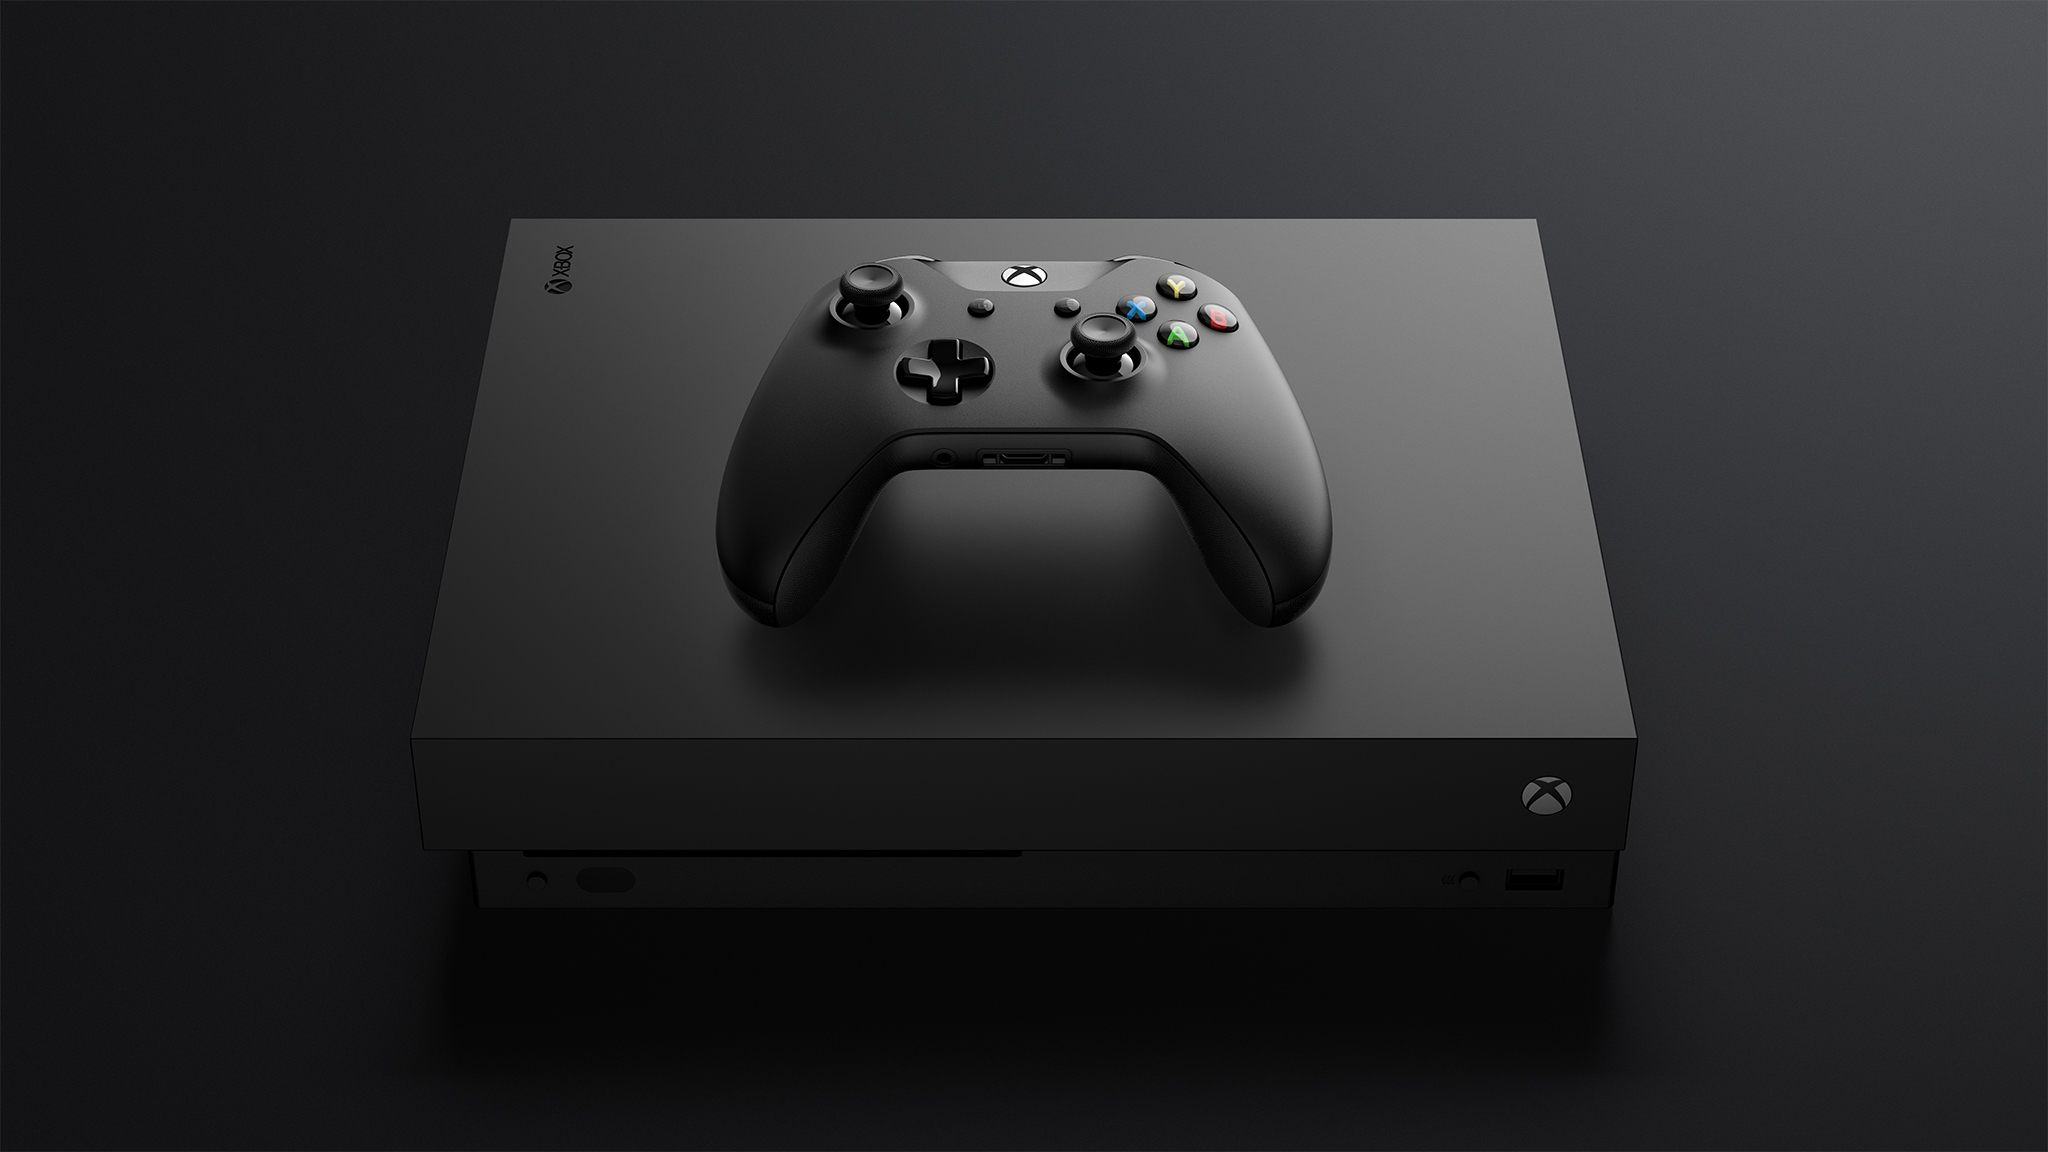 xbox one x, hd computer, 4k wallpapers, images, backgrounds, photos